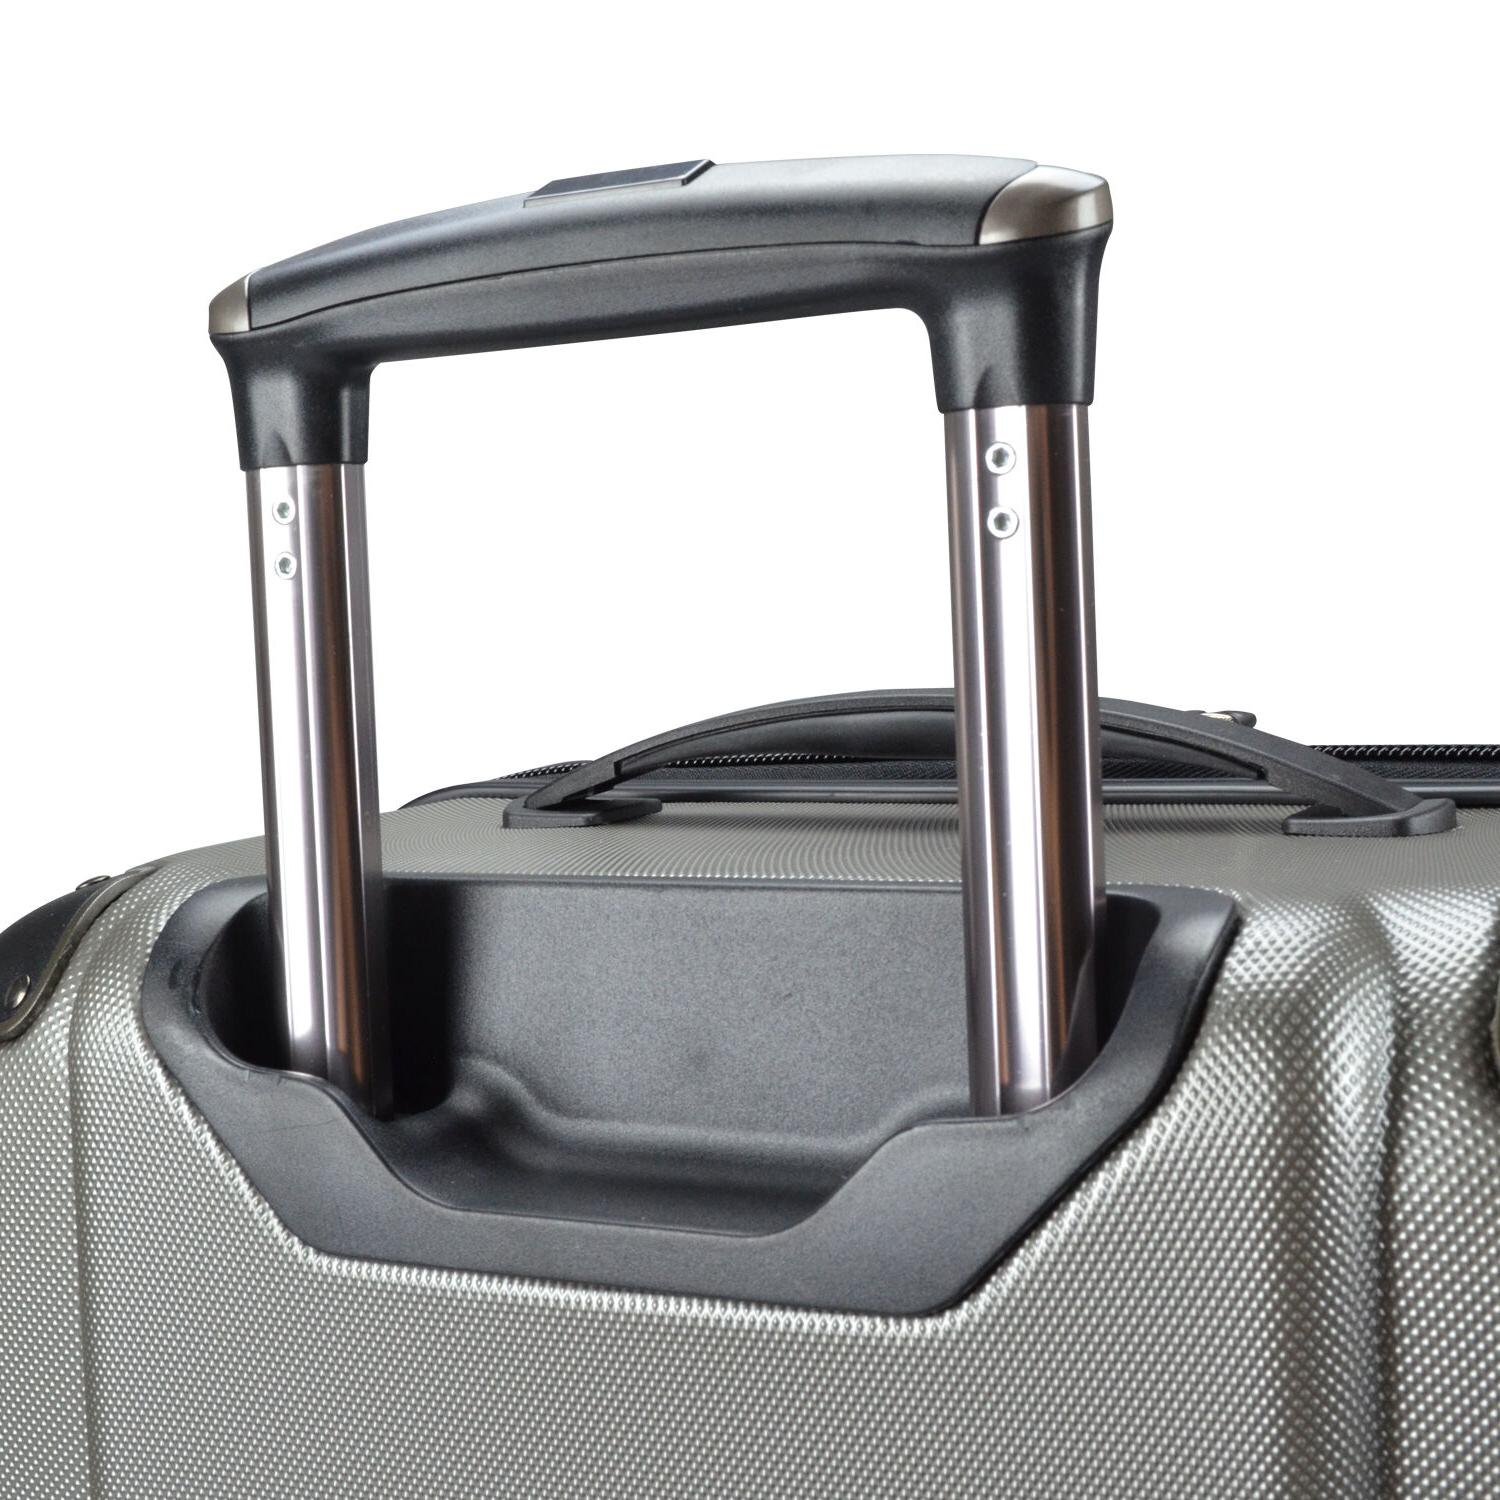 "Traveler's Choice Polycarbonate 28"" Suitcase"